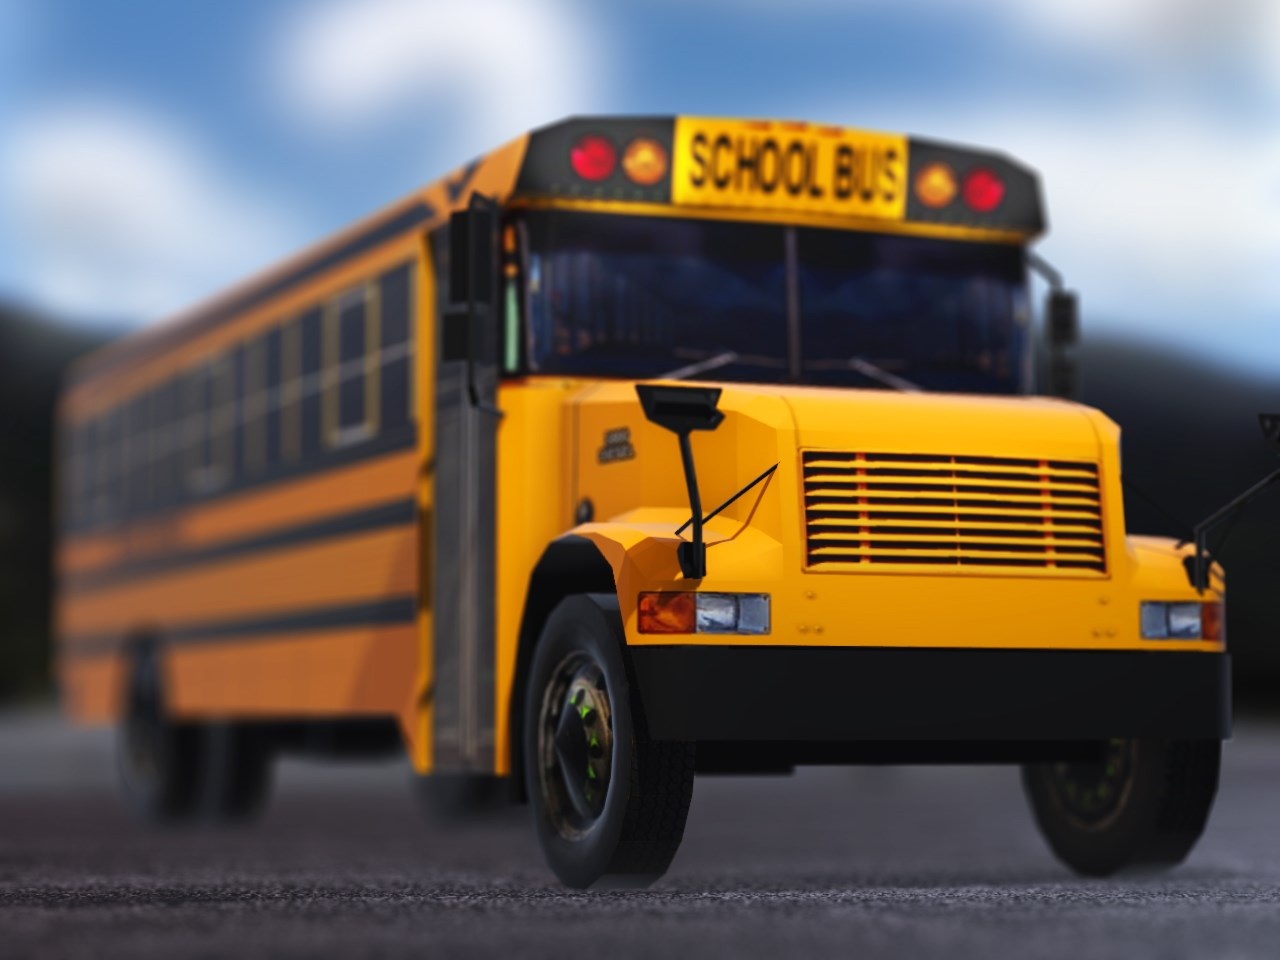 SCHOOL BUS OTS_1503958922320.jpg